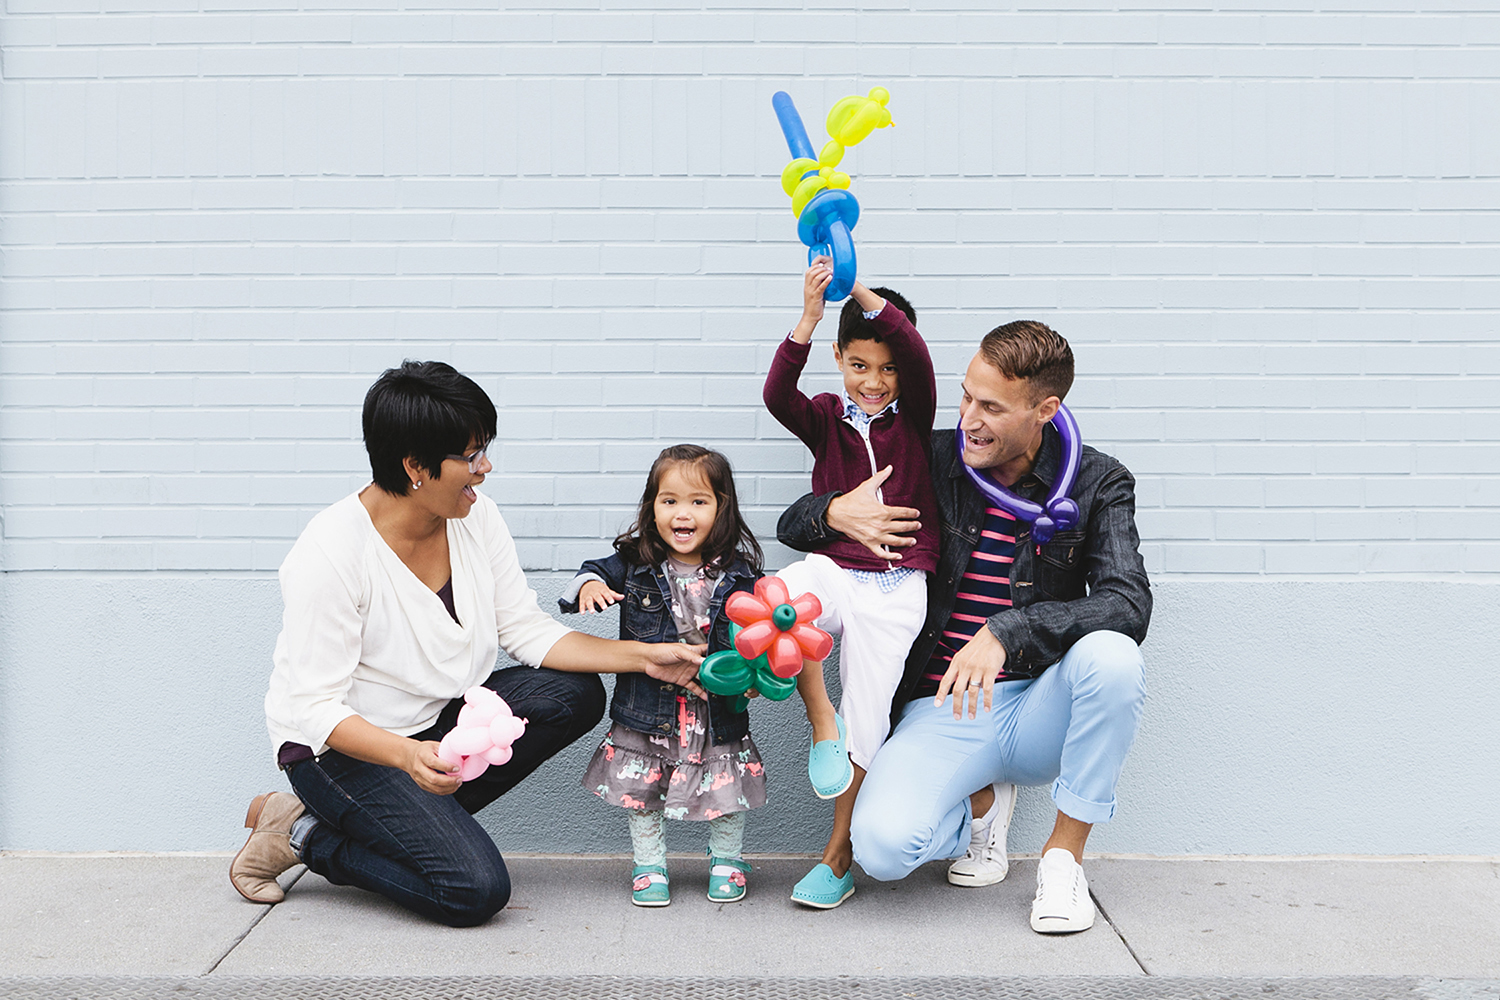 lifestyle-editorial-children-washington-dc-malek-naz-photography-contempo-kids-animal-balloons.jpg